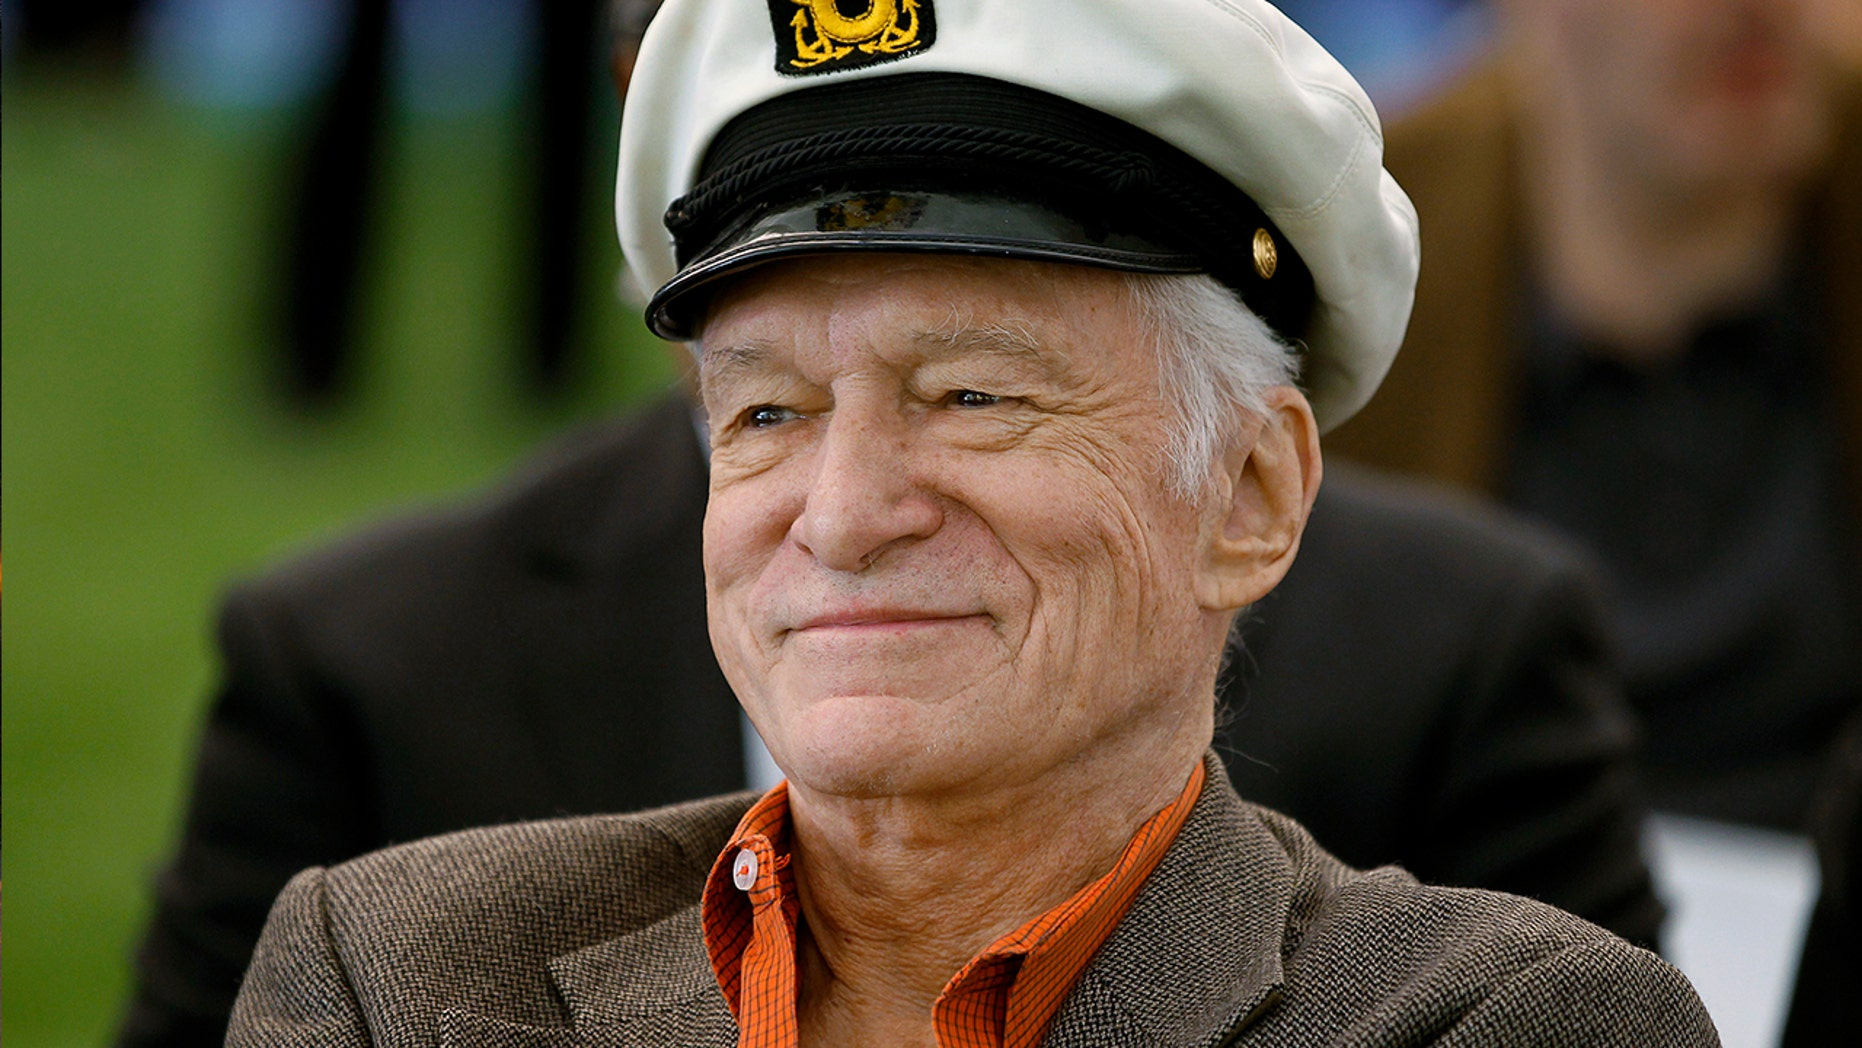 You won't believe what foods the Playboy founder favored.